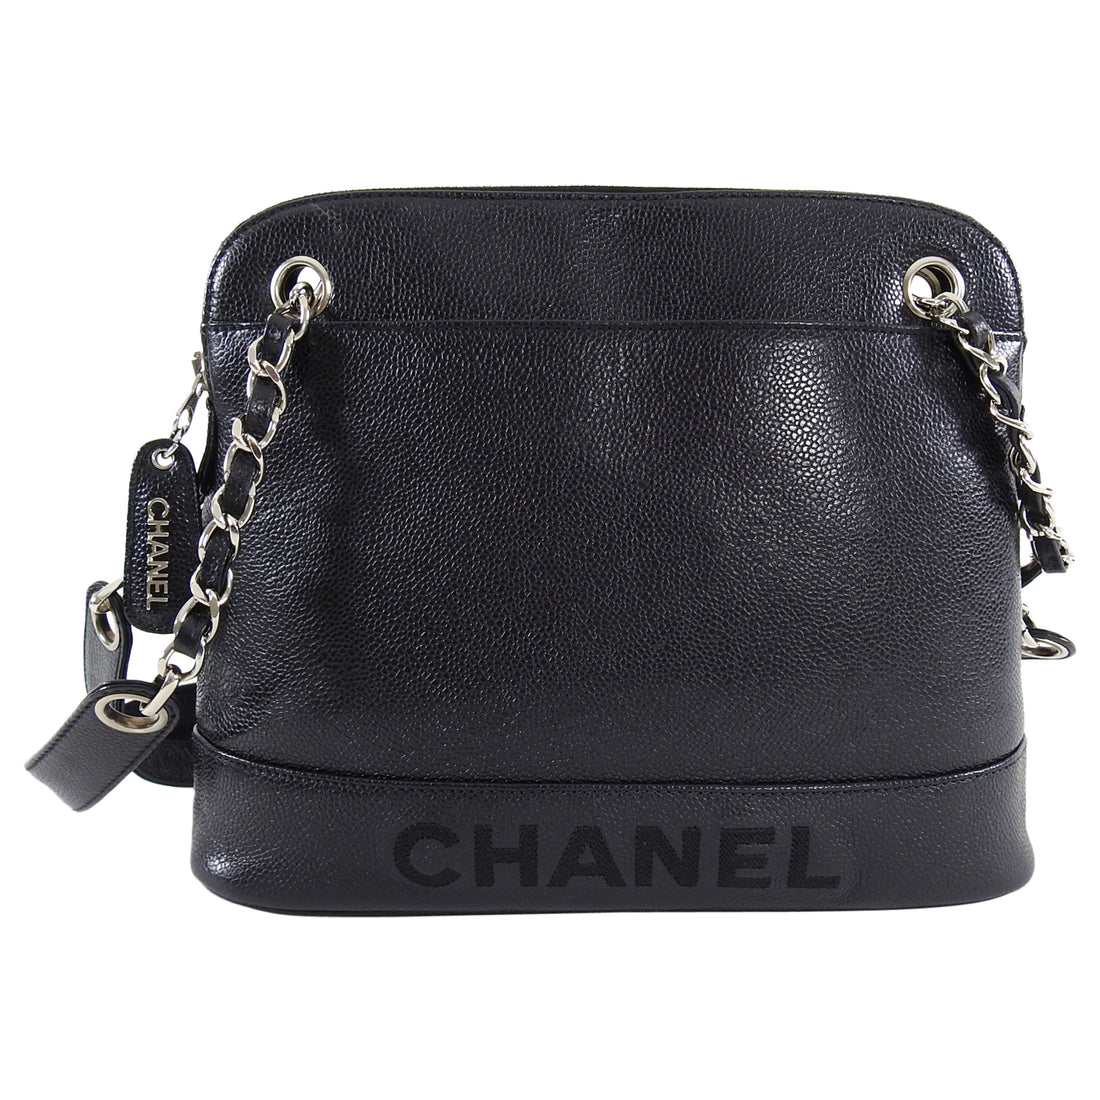 Chanel Vintage 1996 Black Caviar Embroidered Logo Shoulder Bag